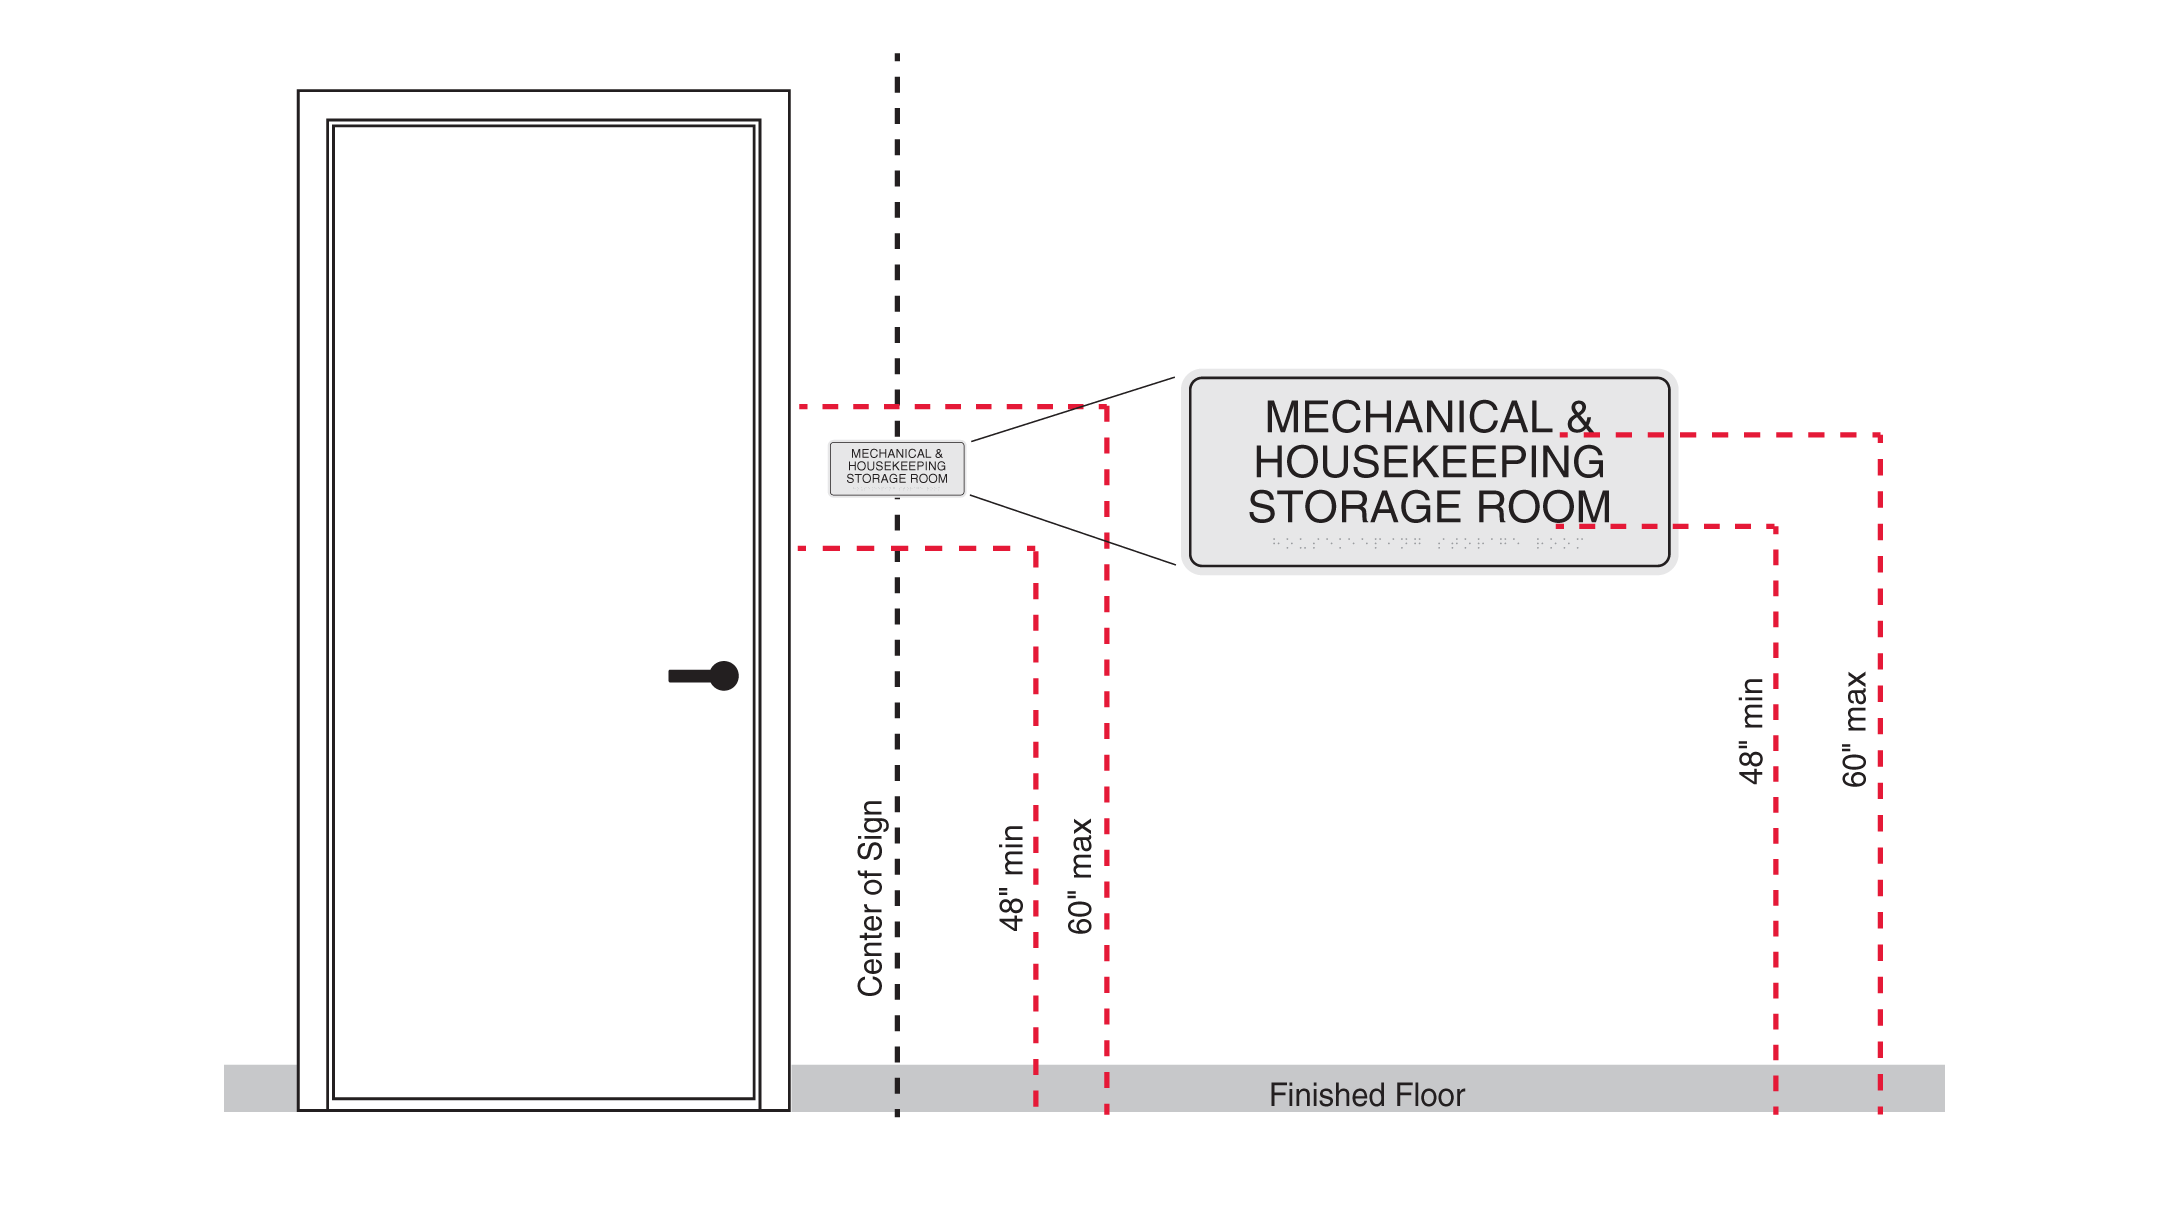 Installation Height For Tactile Signs